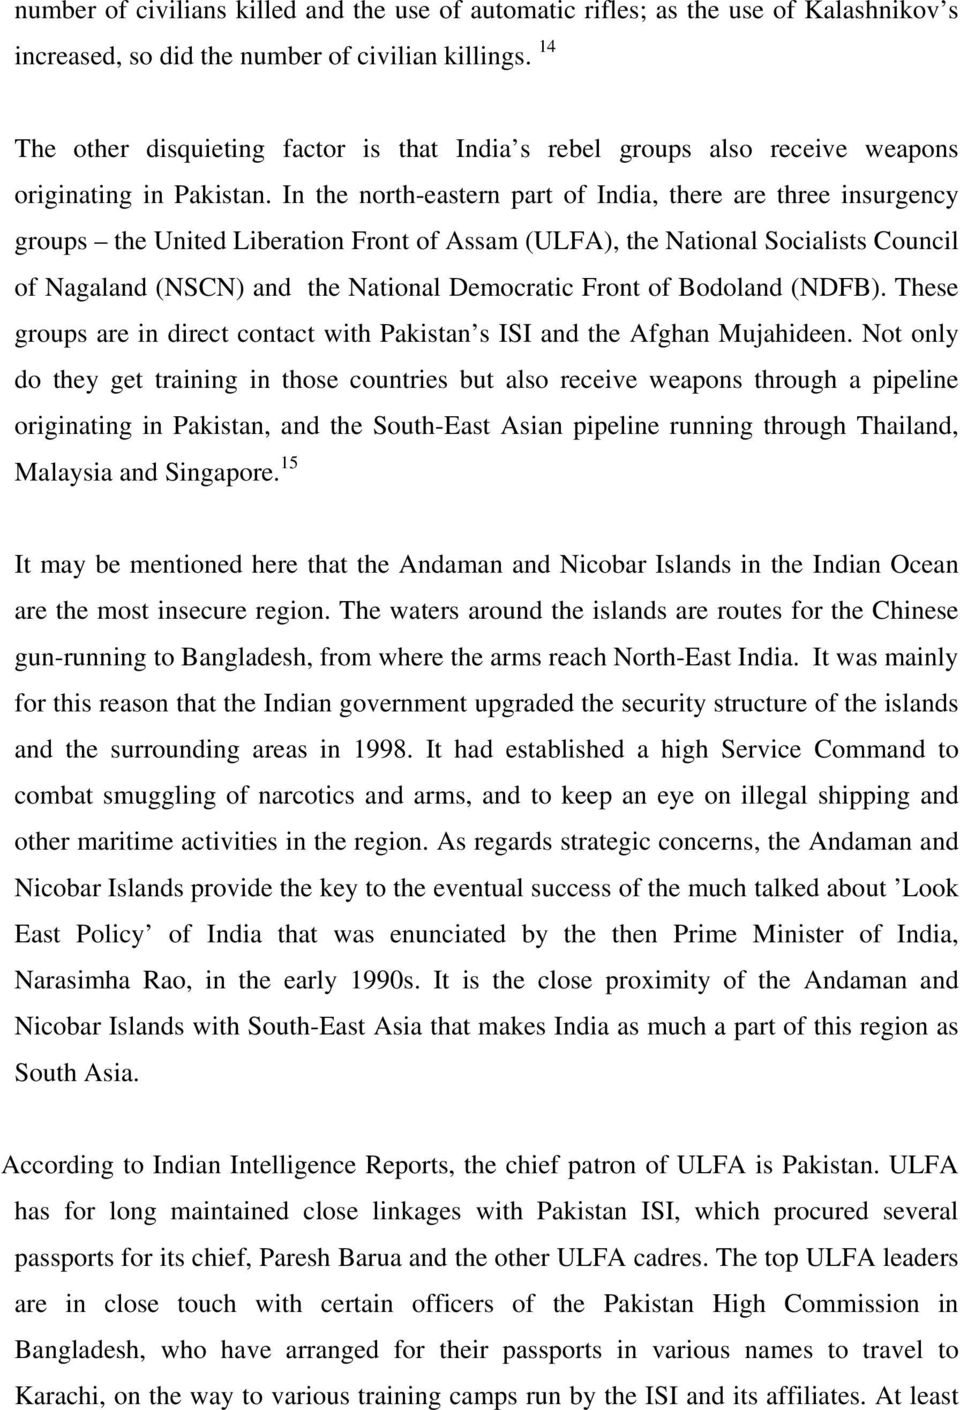 In the north-eastern part of India, there are three insurgency groups the United Liberation Front of Assam (ULFA), the National Socialists Council of Nagaland (NSCN) and the National Democratic Front